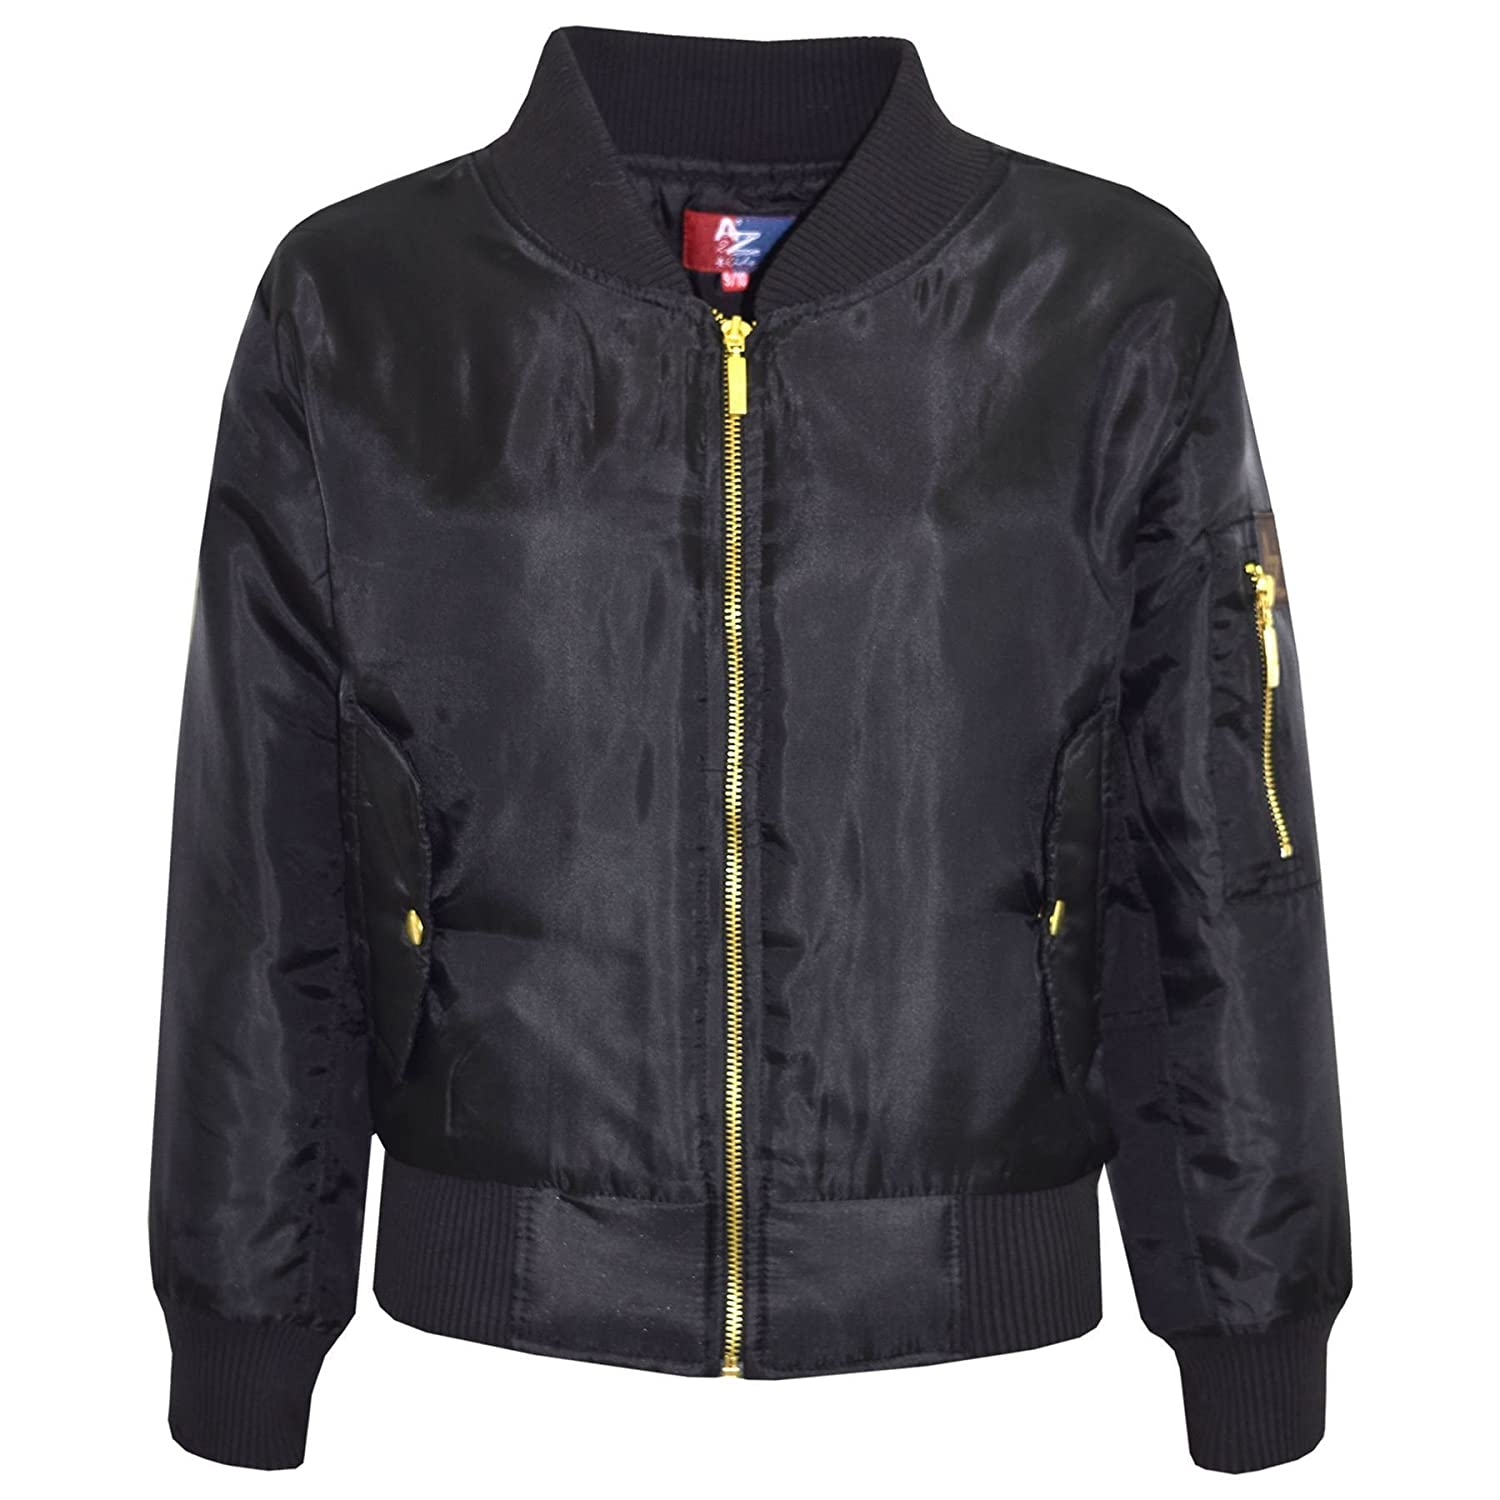 A2Z 4 Kids/® Kids Jacket Girls Boys MA1 Ruched Sleeves Bomber Padded Zip Up Biker Jacktes MA 1 Coat New Age 3 4 5 6 7 8 9 10 11 12 13 Years